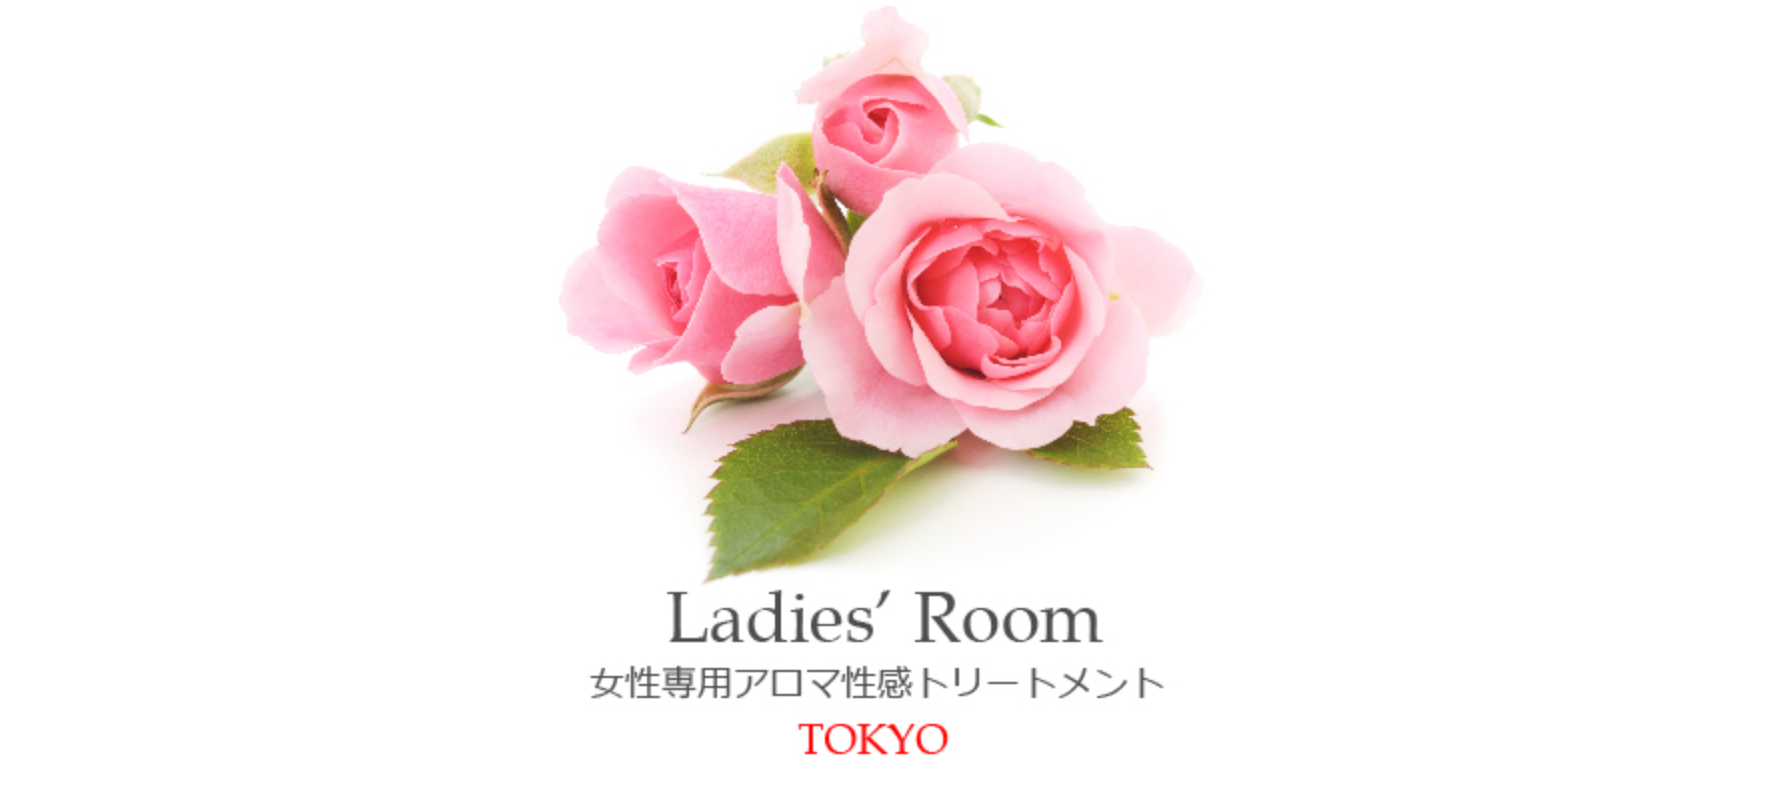 Ladies' Room